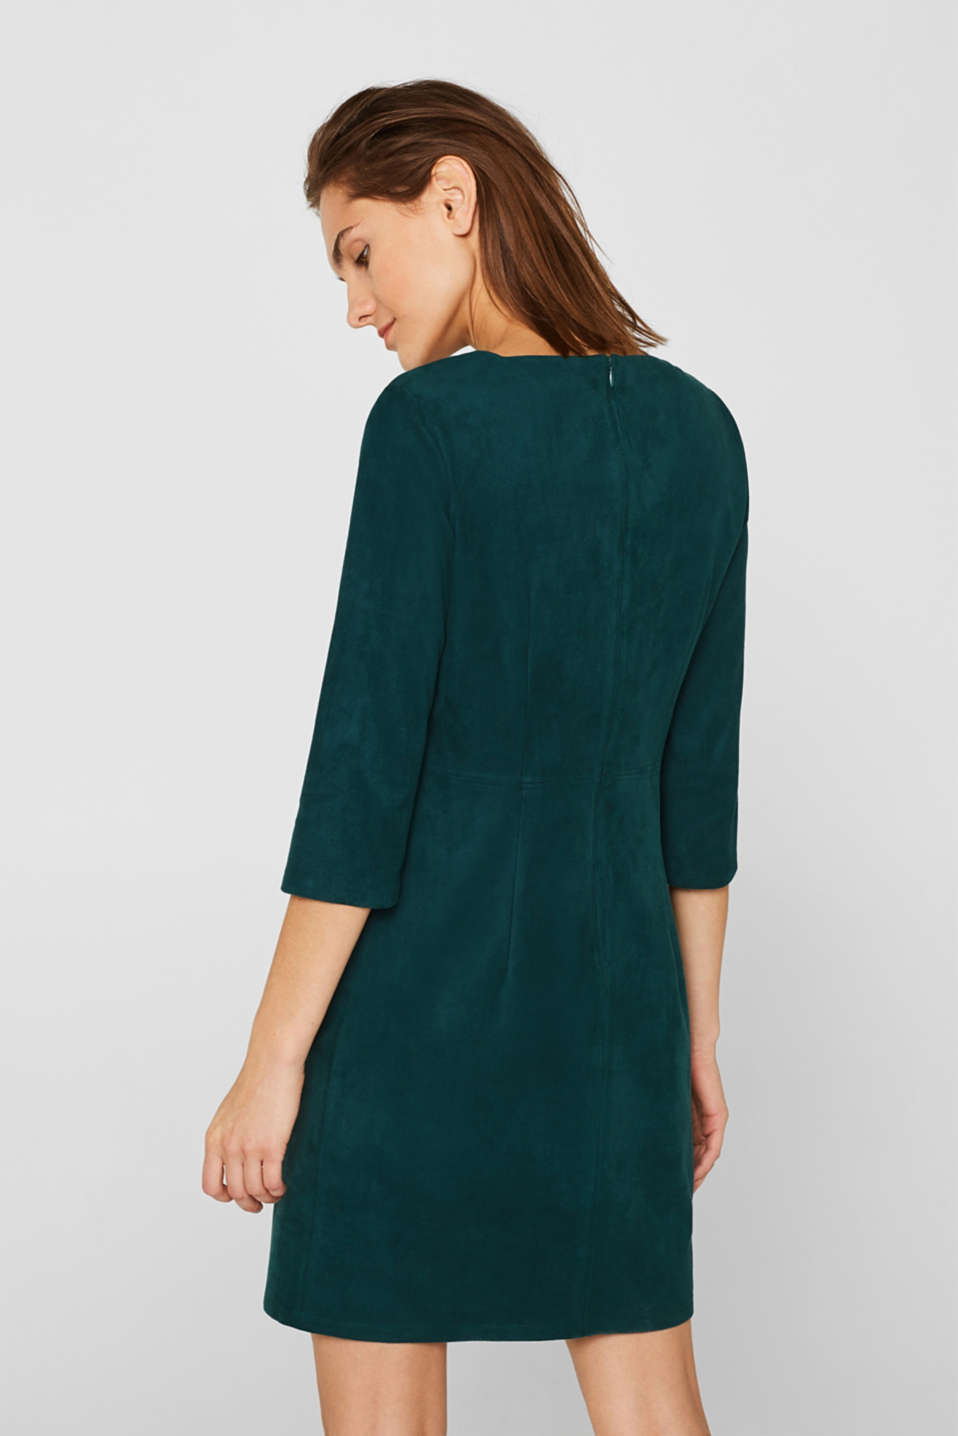 Stretch faux leather dress, DARK TEAL GREEN, detail image number 3